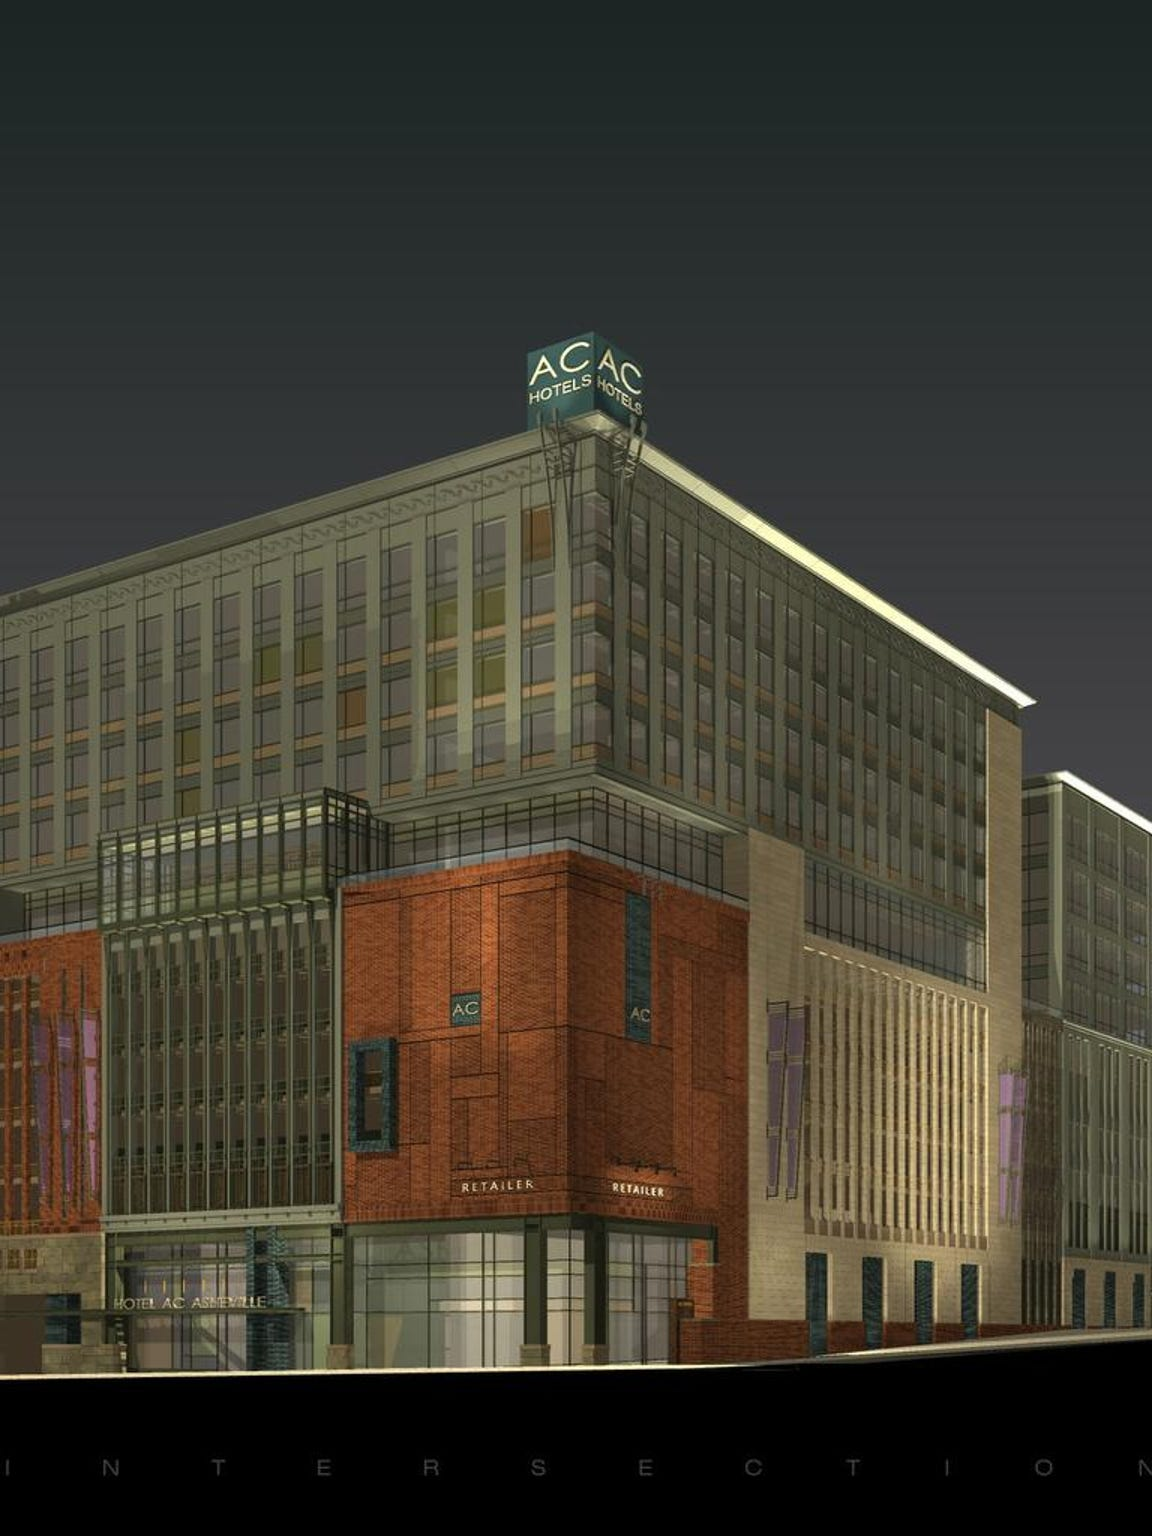 This artist's rendering shows the AC Hotel proposed